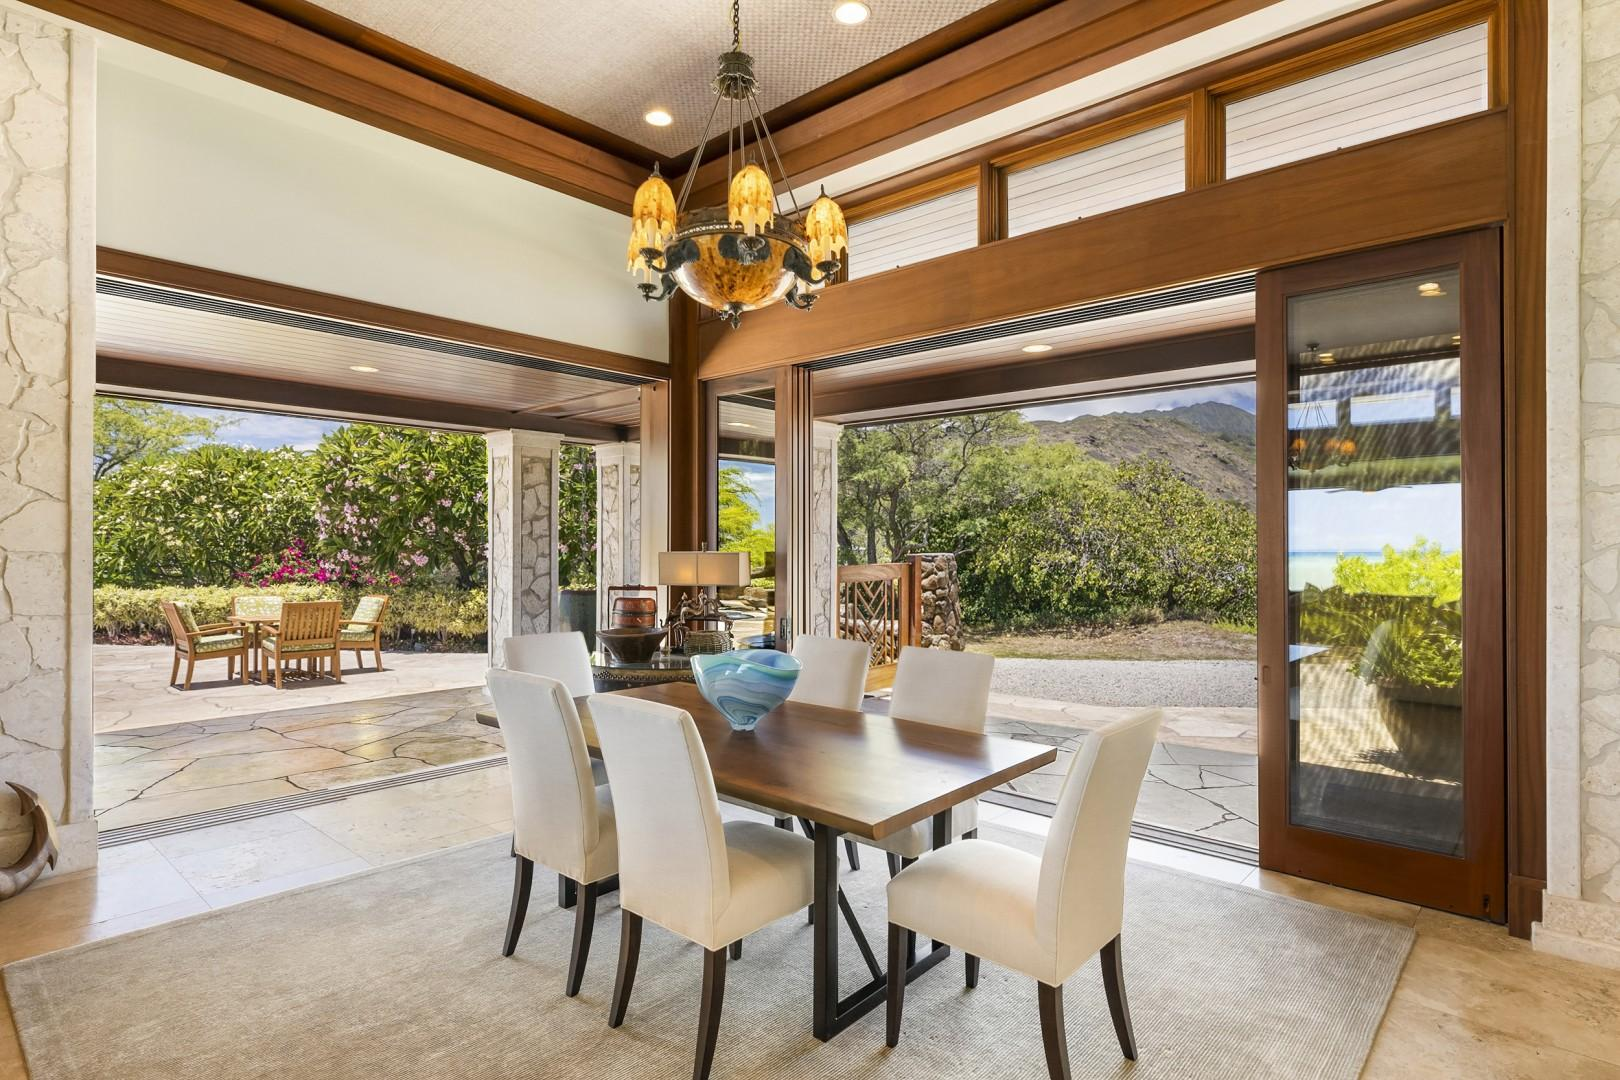 Dining Room opens to Poolside Lanai that has additional table seating.